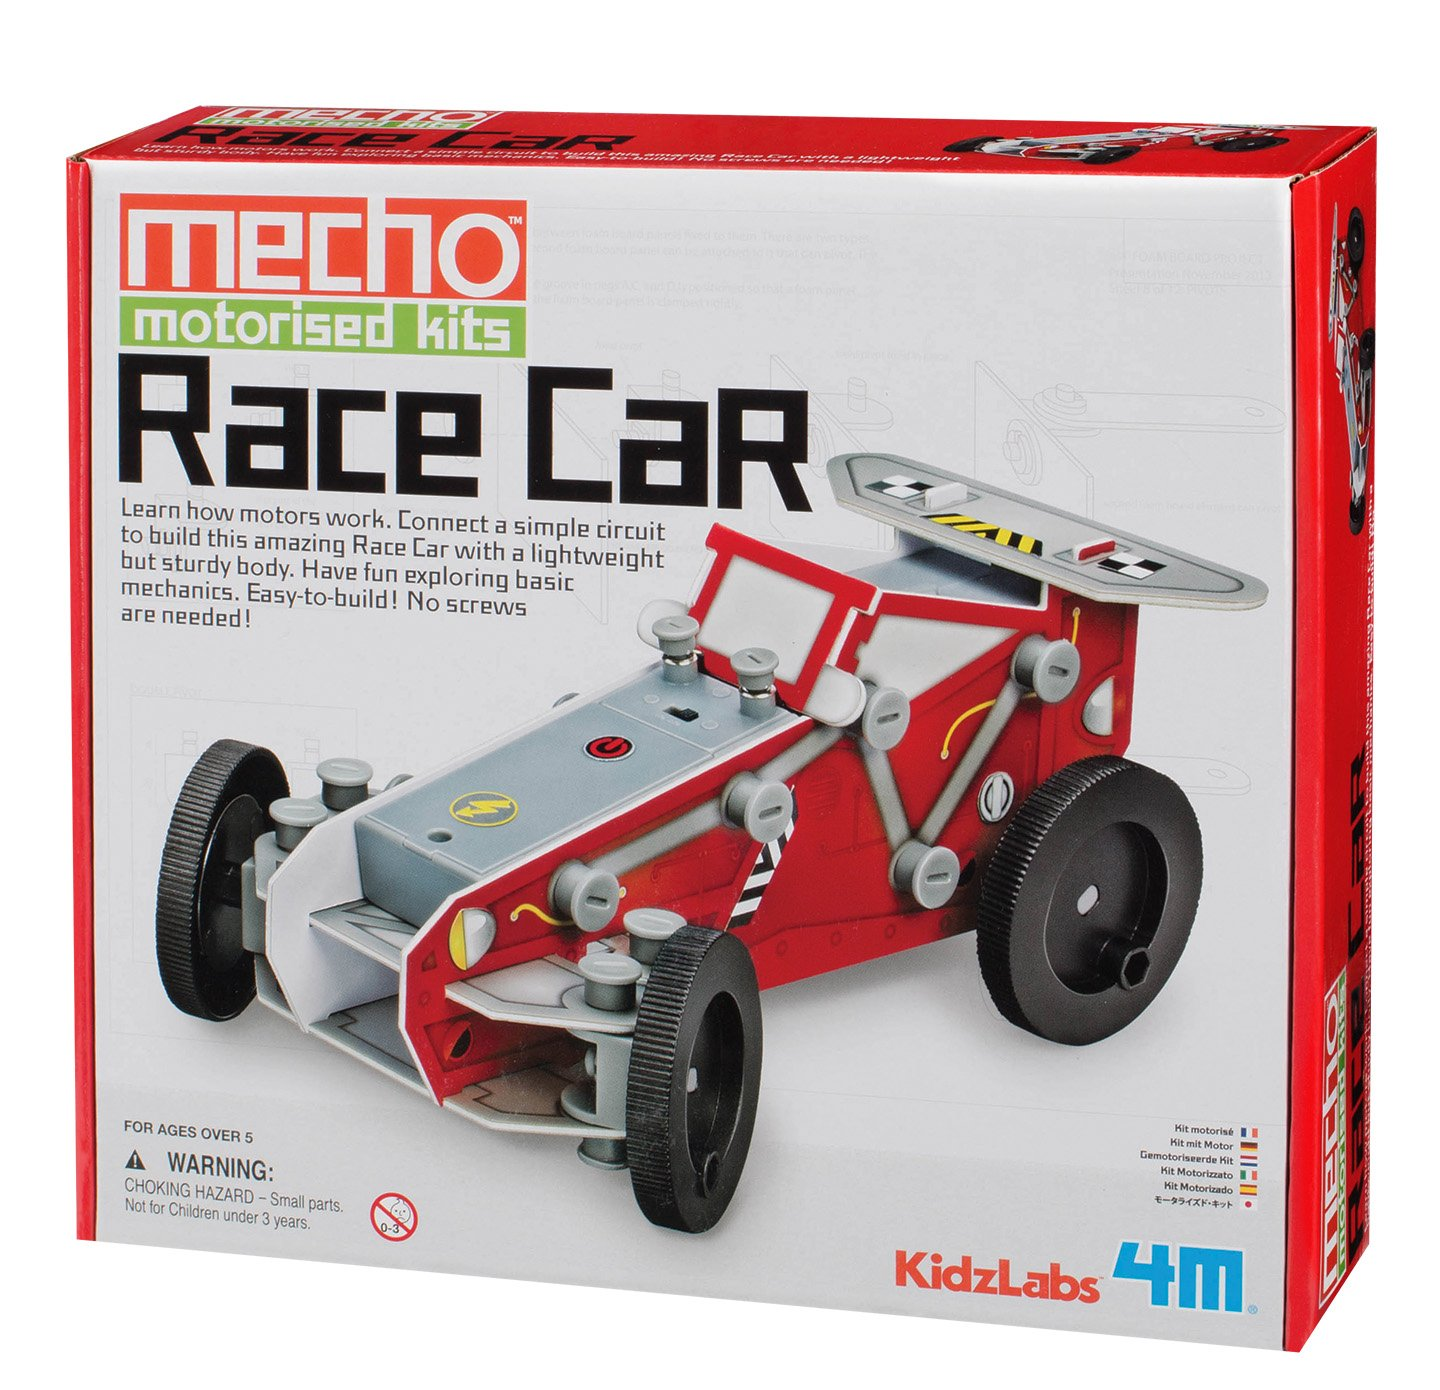 Smart Car Cozy Coupe Puts Childlike Fun Back In Driving: 4M KidzLabs Race Car Mecho